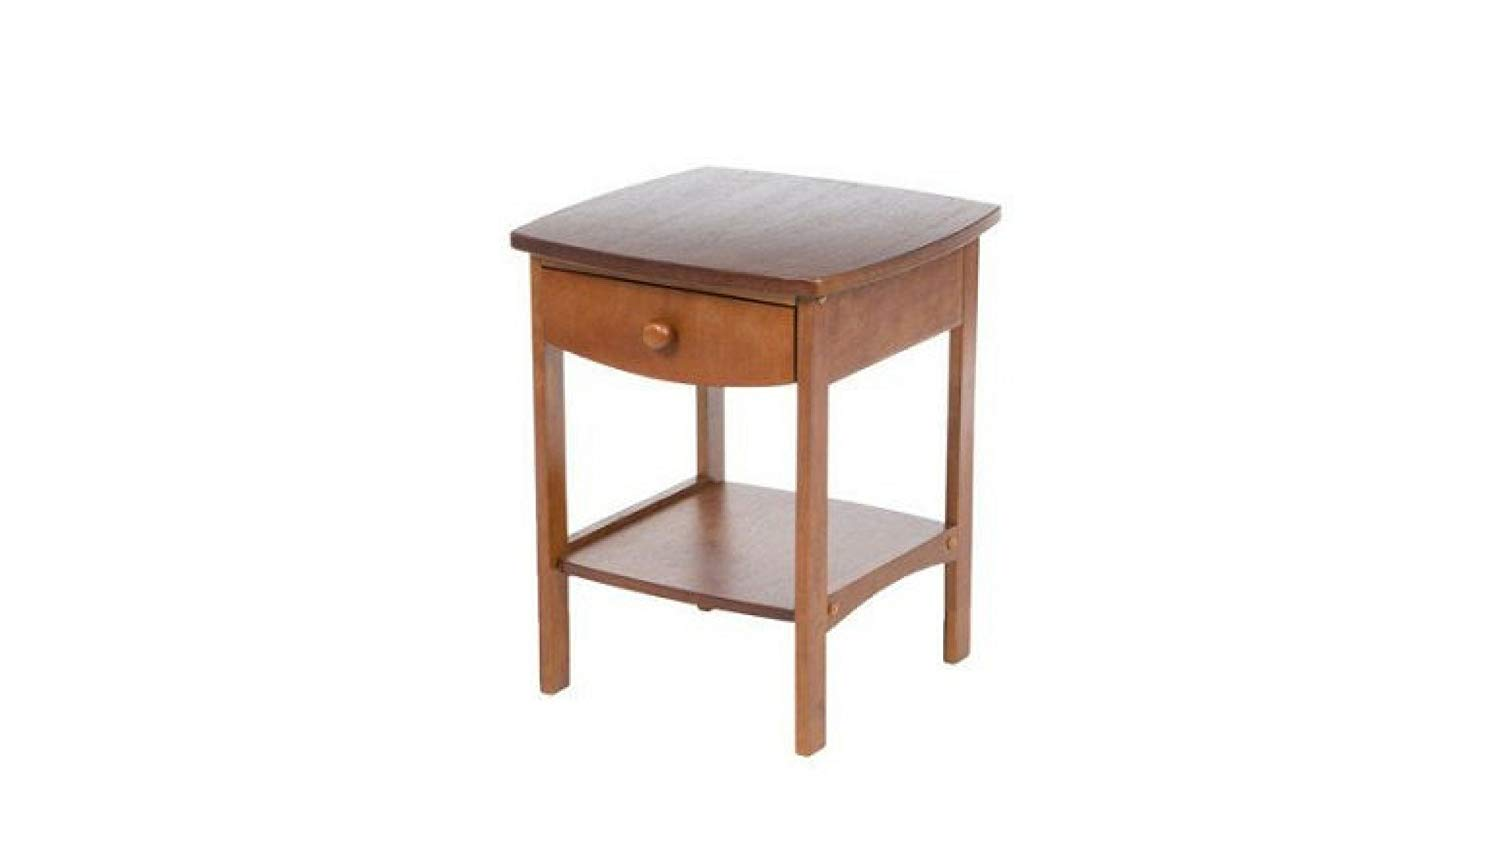 winsome wood curved nightstand end table features eugene accent white pull out drawer natural kitchen dining living room tables console decor purple tiffany lamp small narrow side